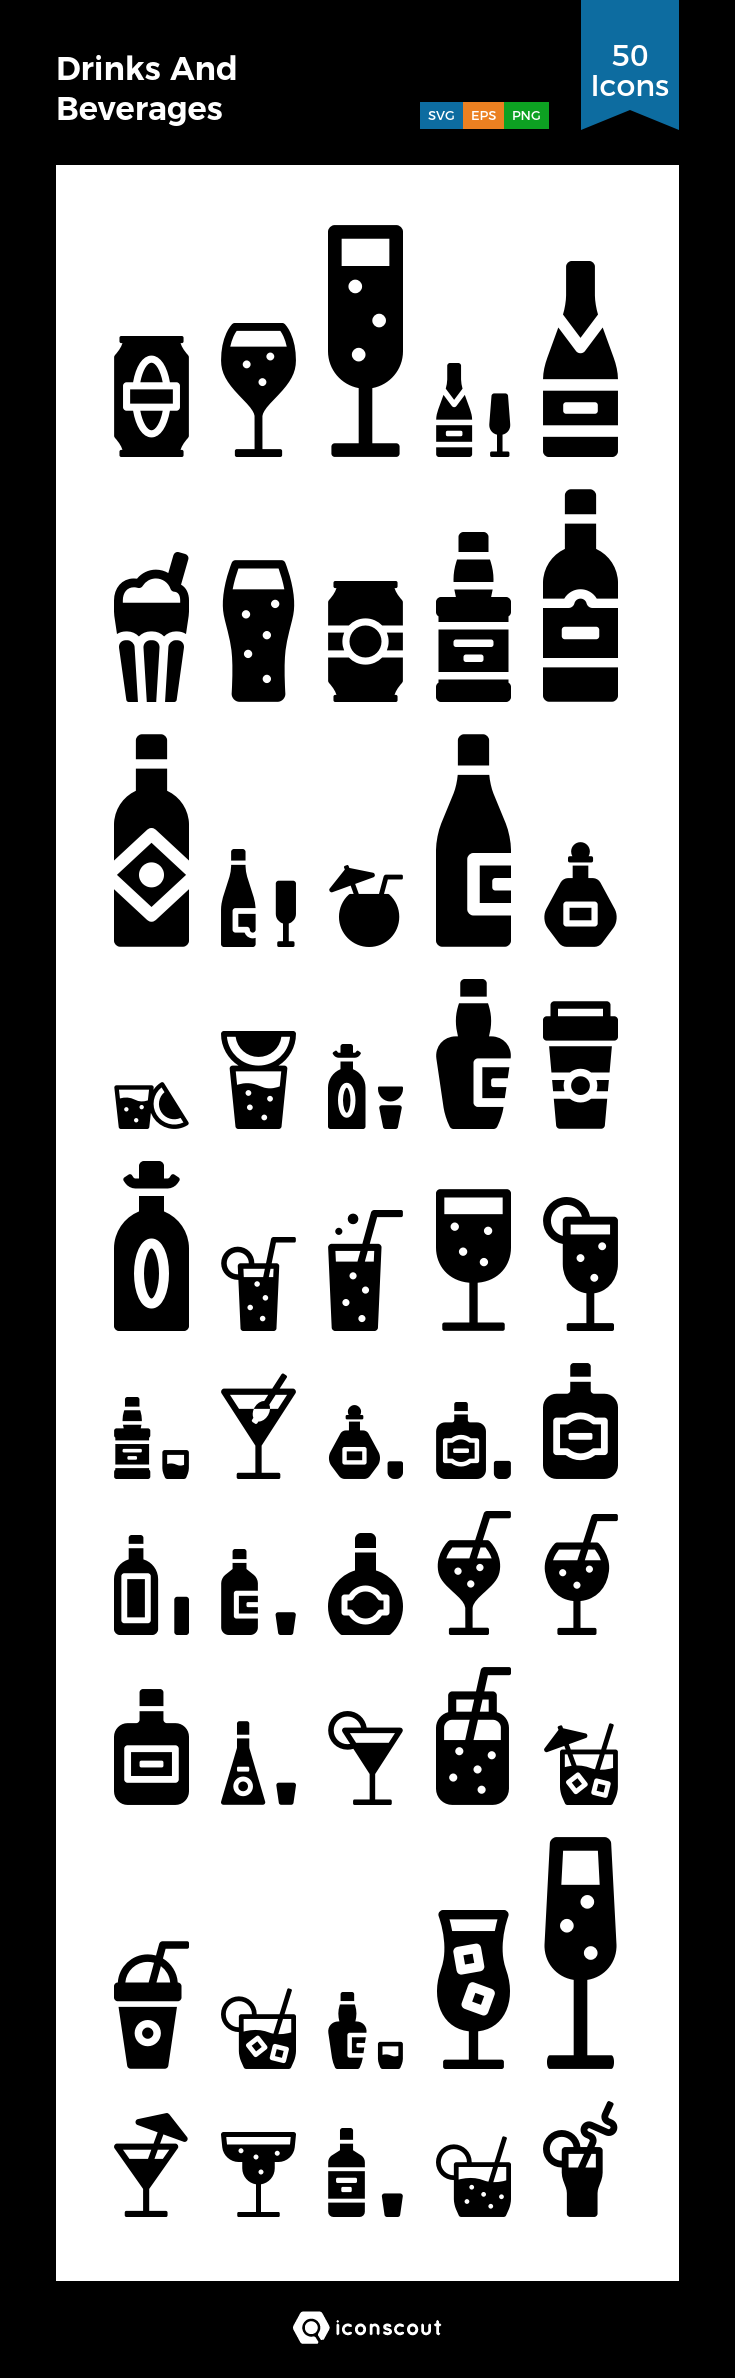 Download Drinks And Beverages Icon pack Available in SVG